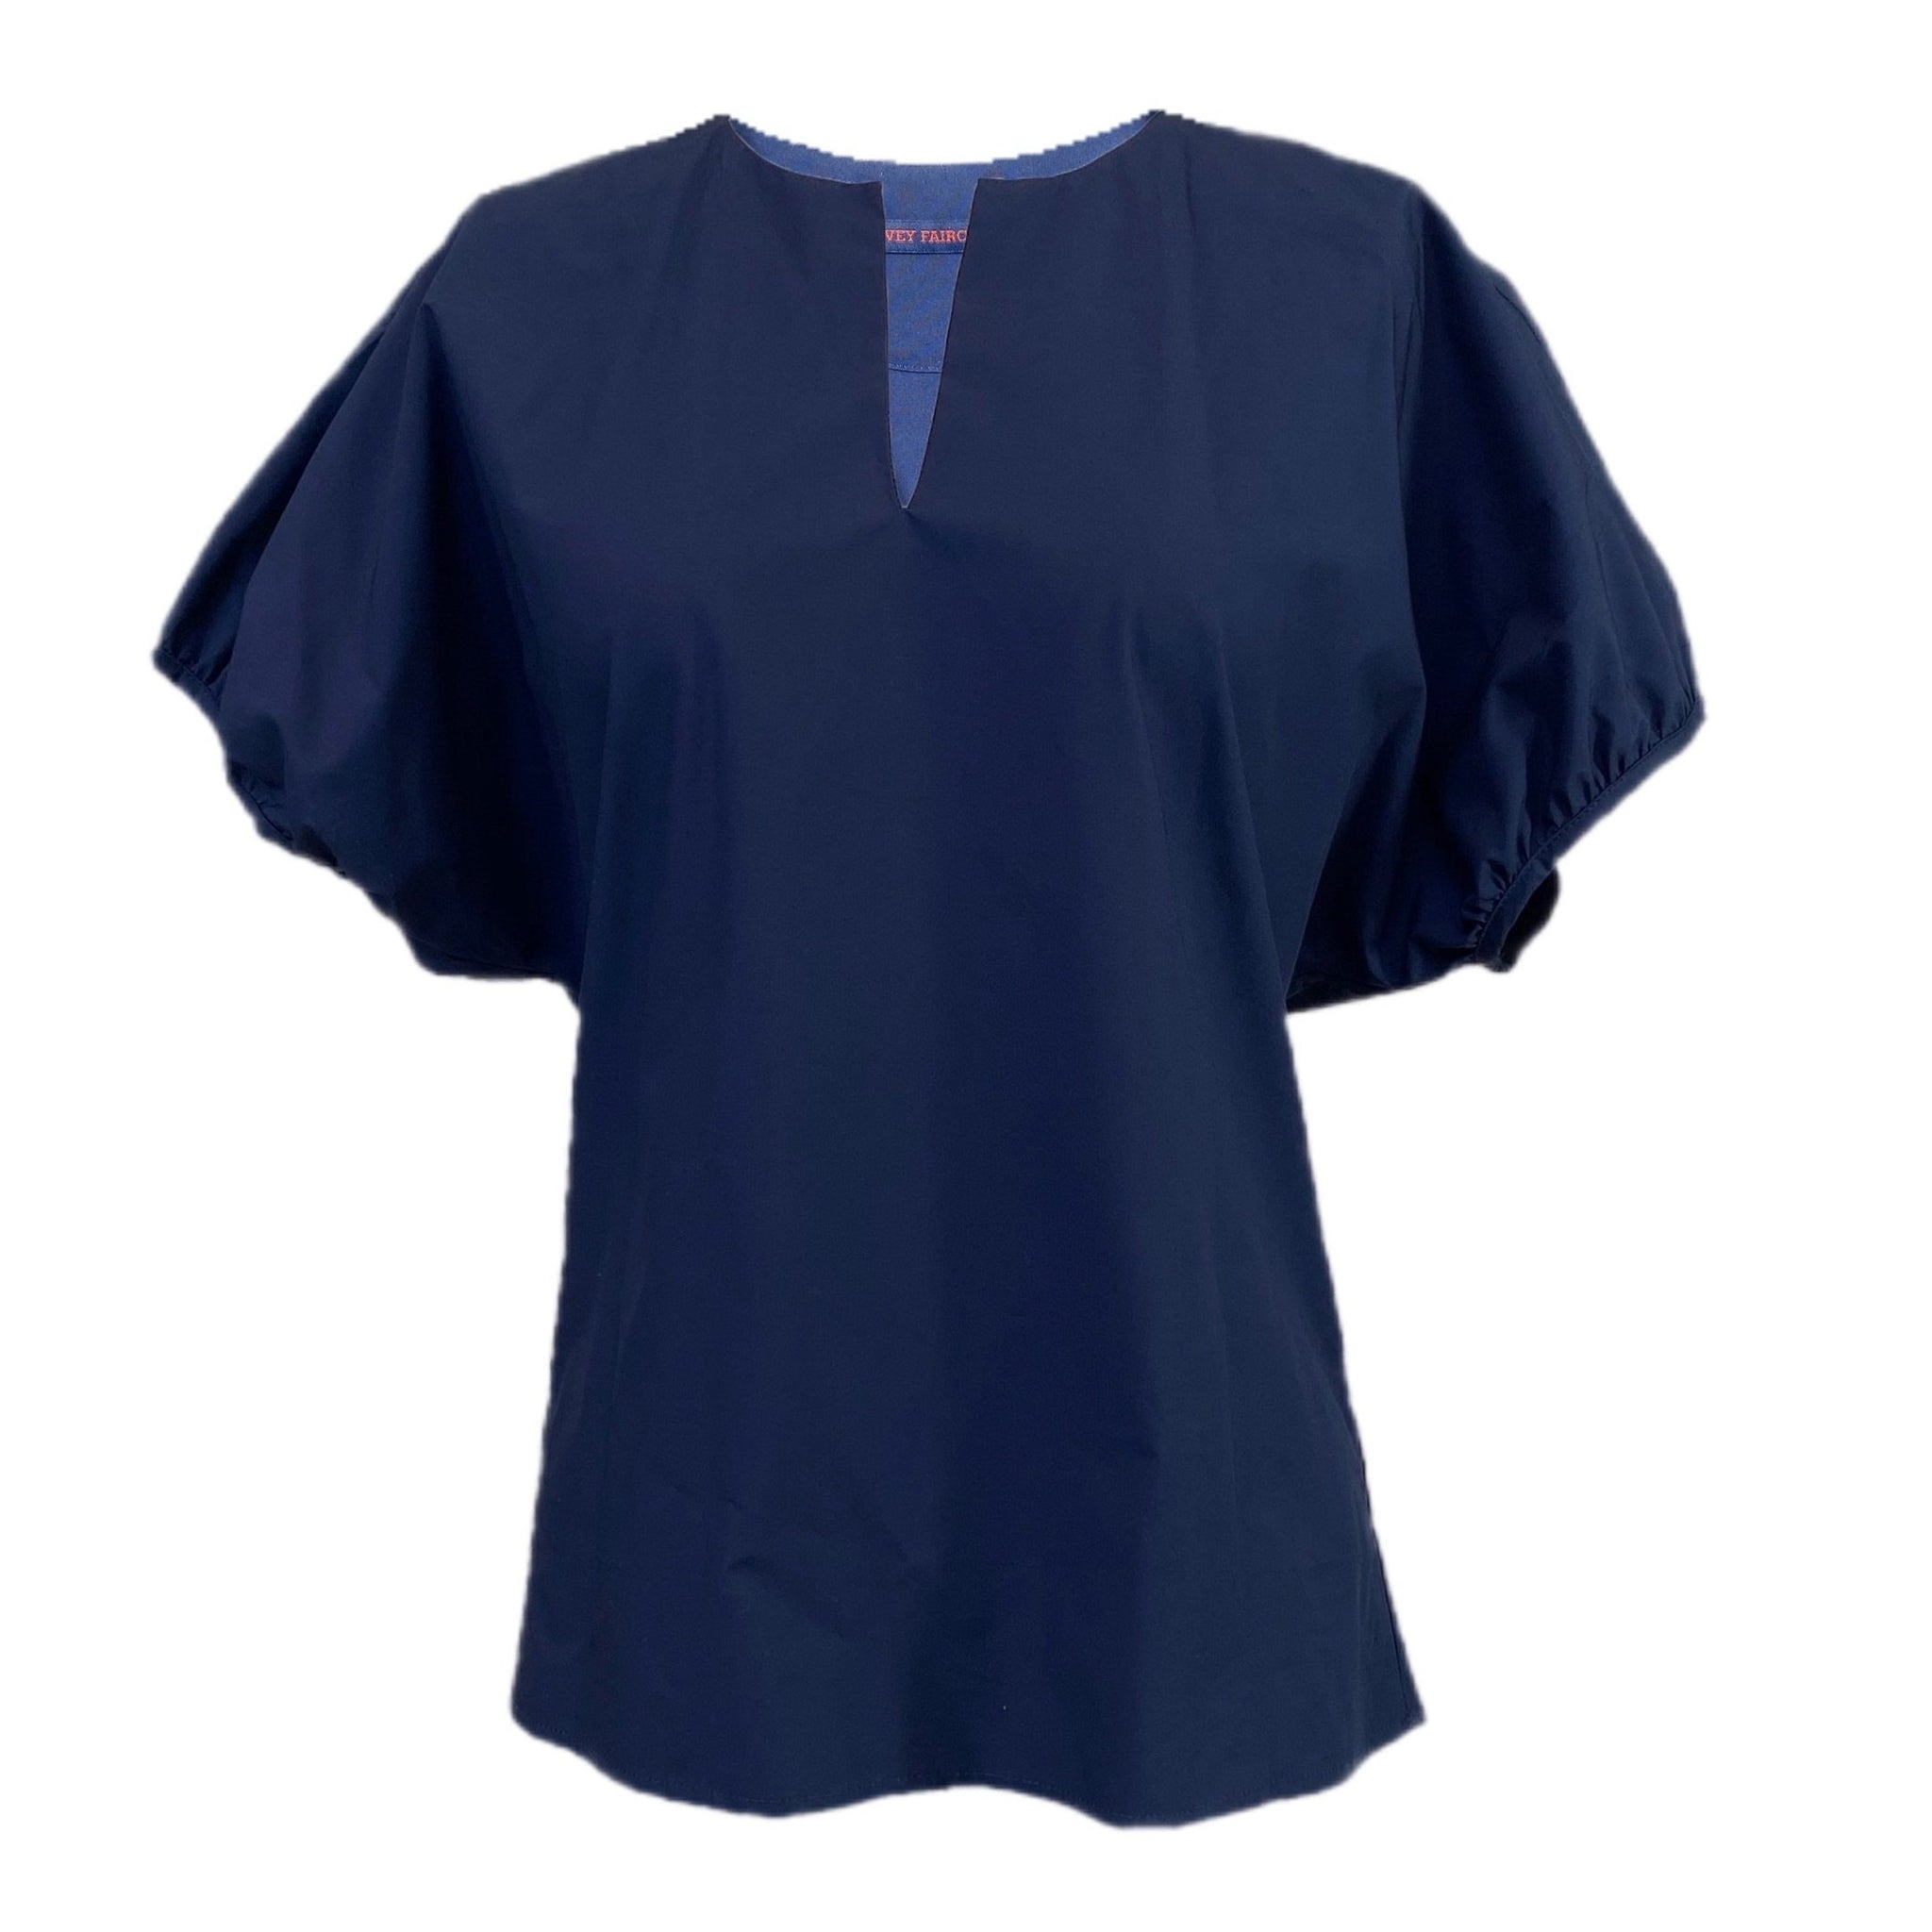 Oversize Puff Sleeve Top in Navy